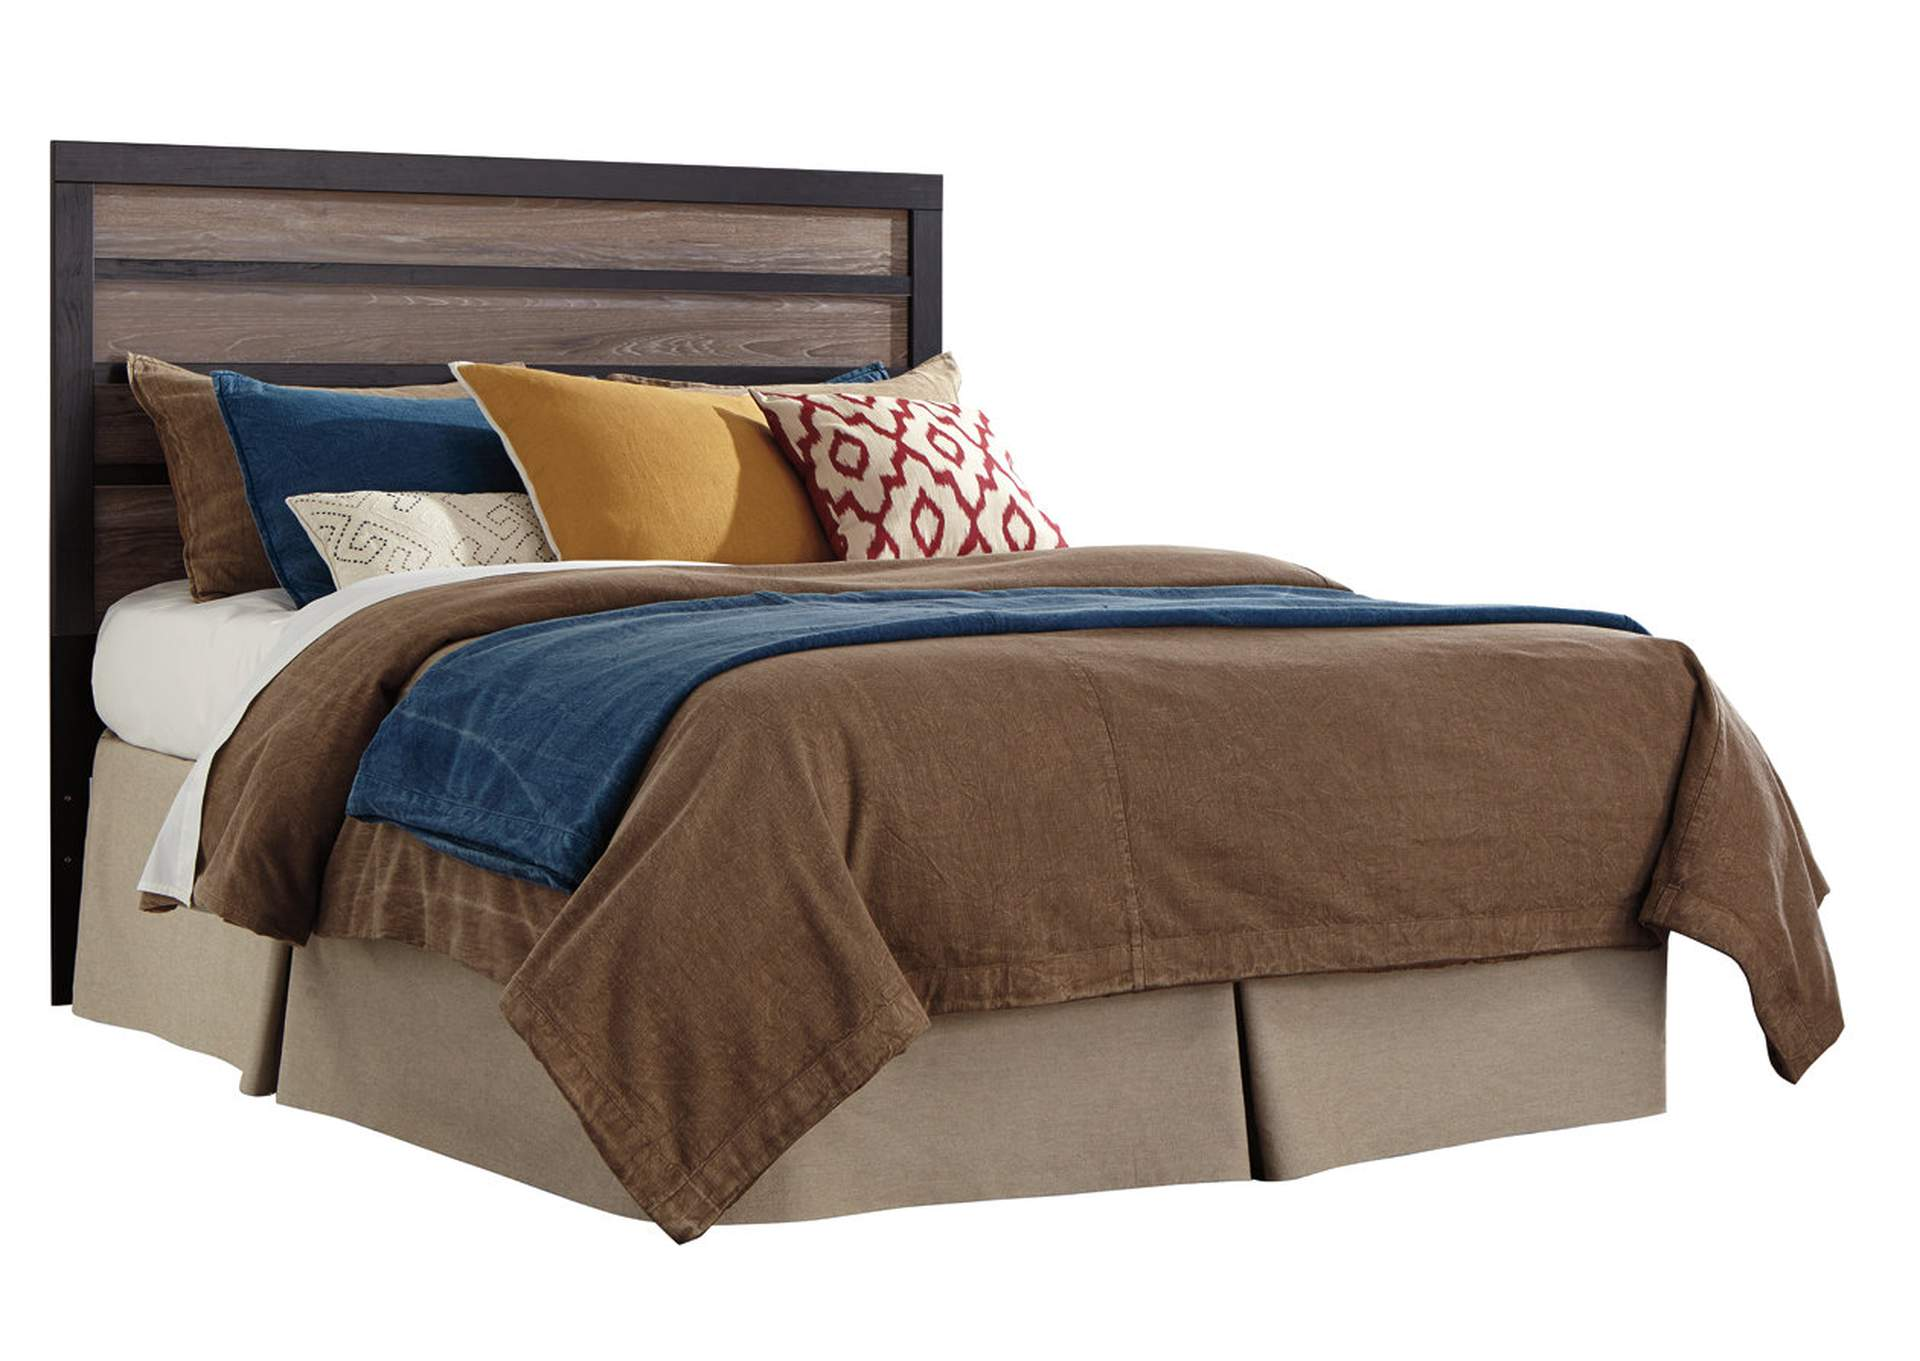 Harlinton Queen/Full Panel Headboard,Signature Design By Ashley